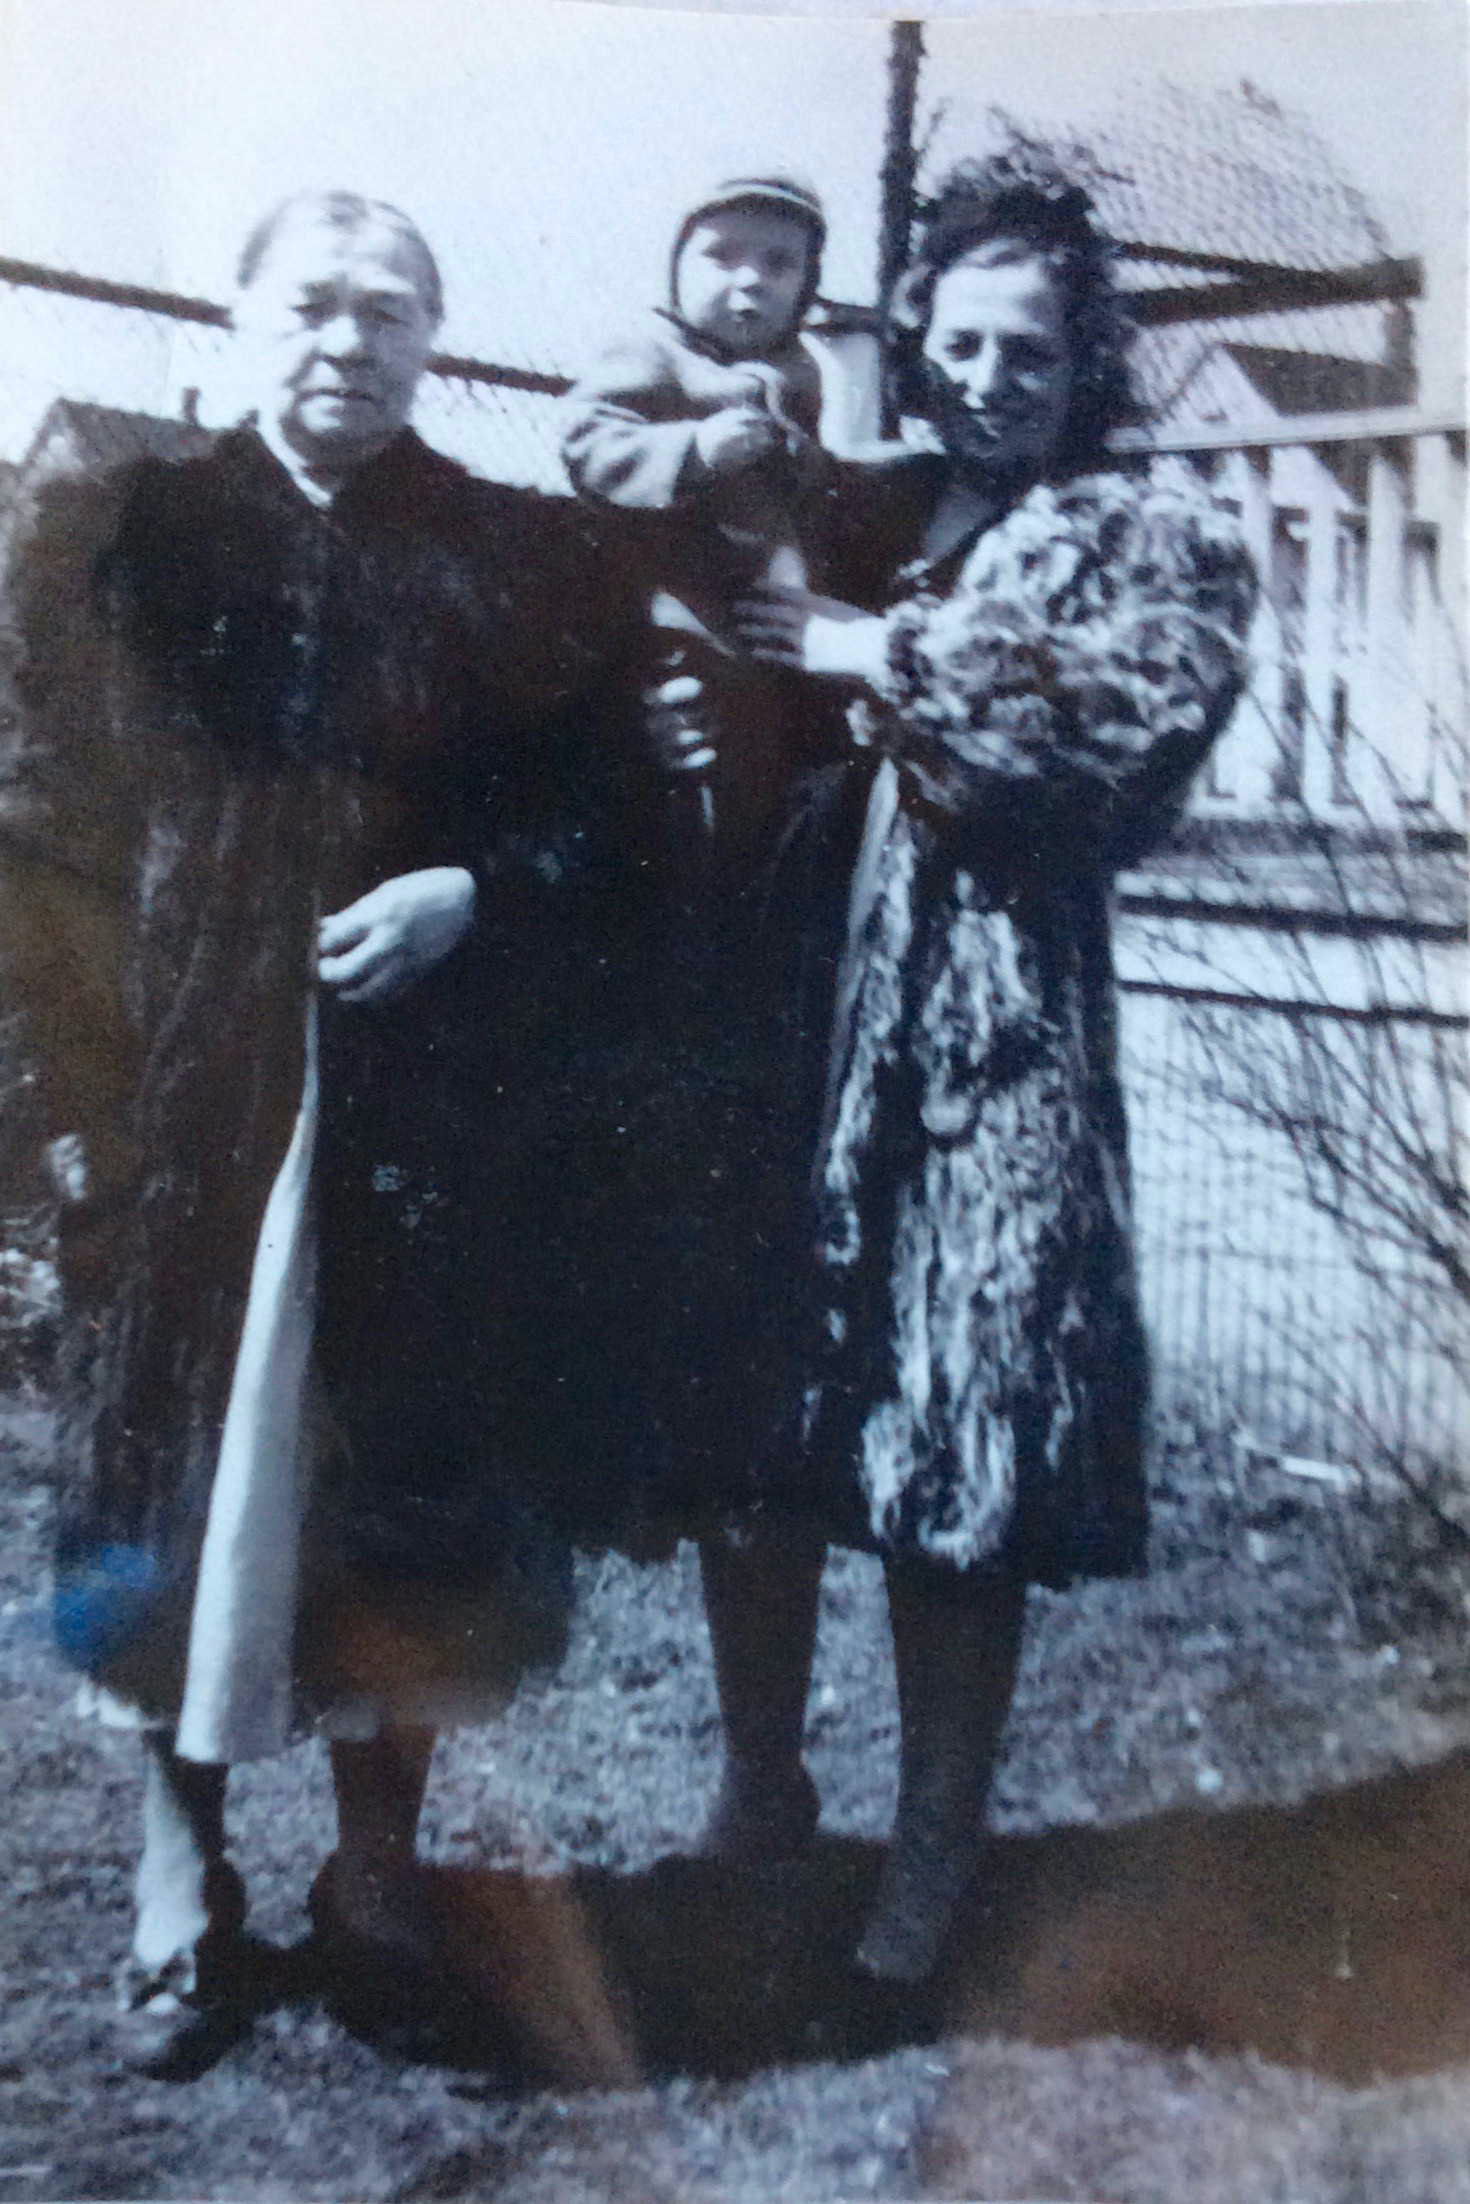 A woman holding a young boy, standing next to an older woman wearing a dark coat